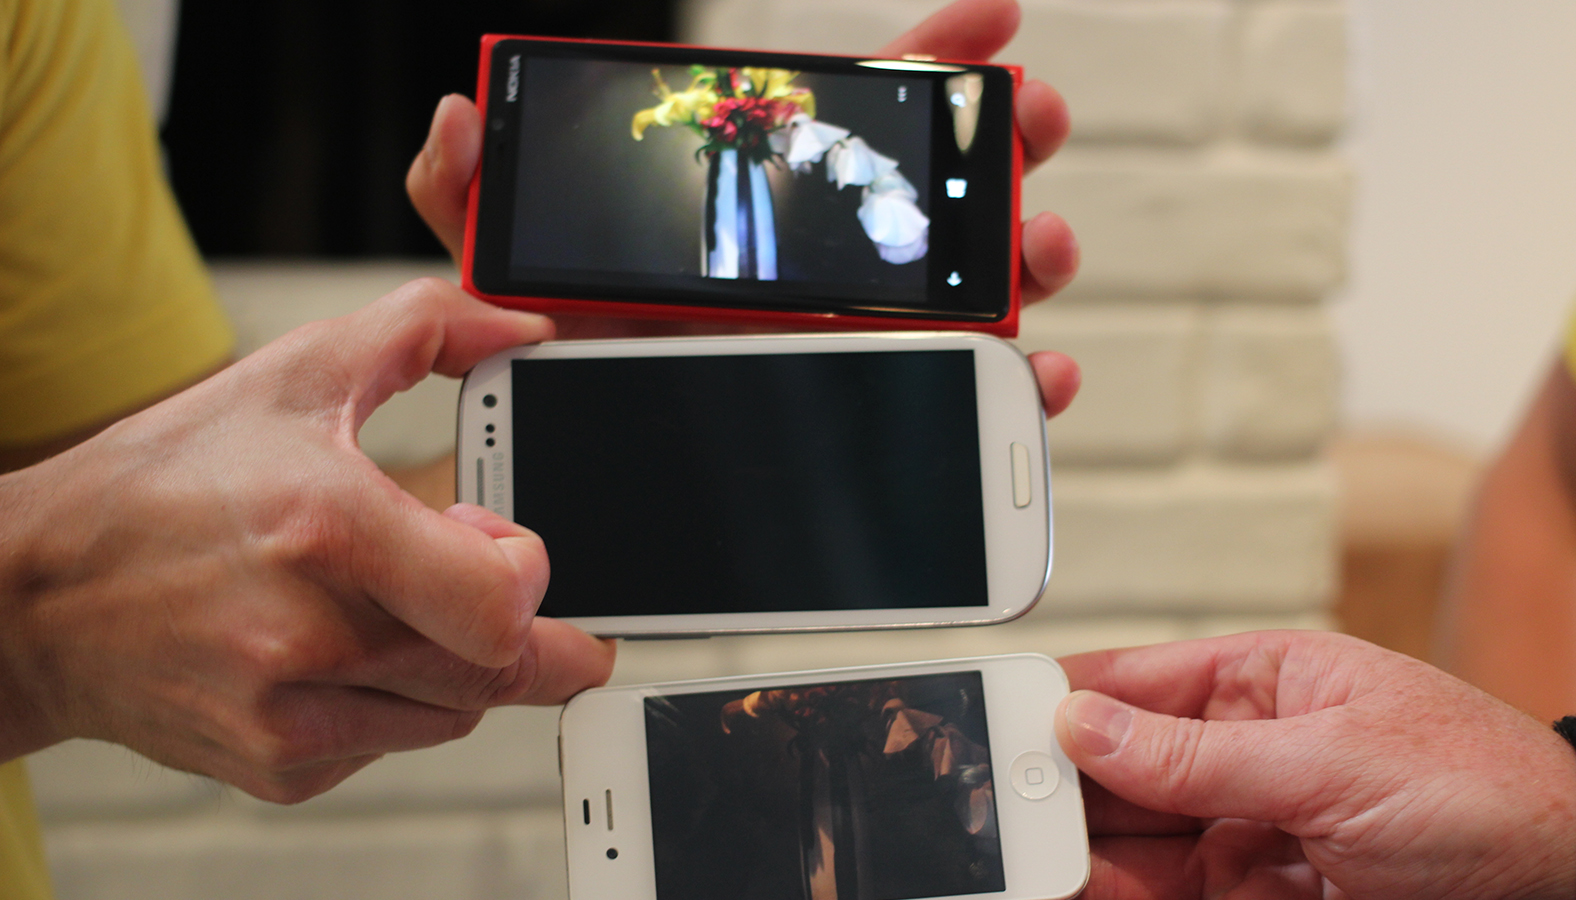 Video Comparison: Just How Good Is The Lumia 920's PureView Camera?